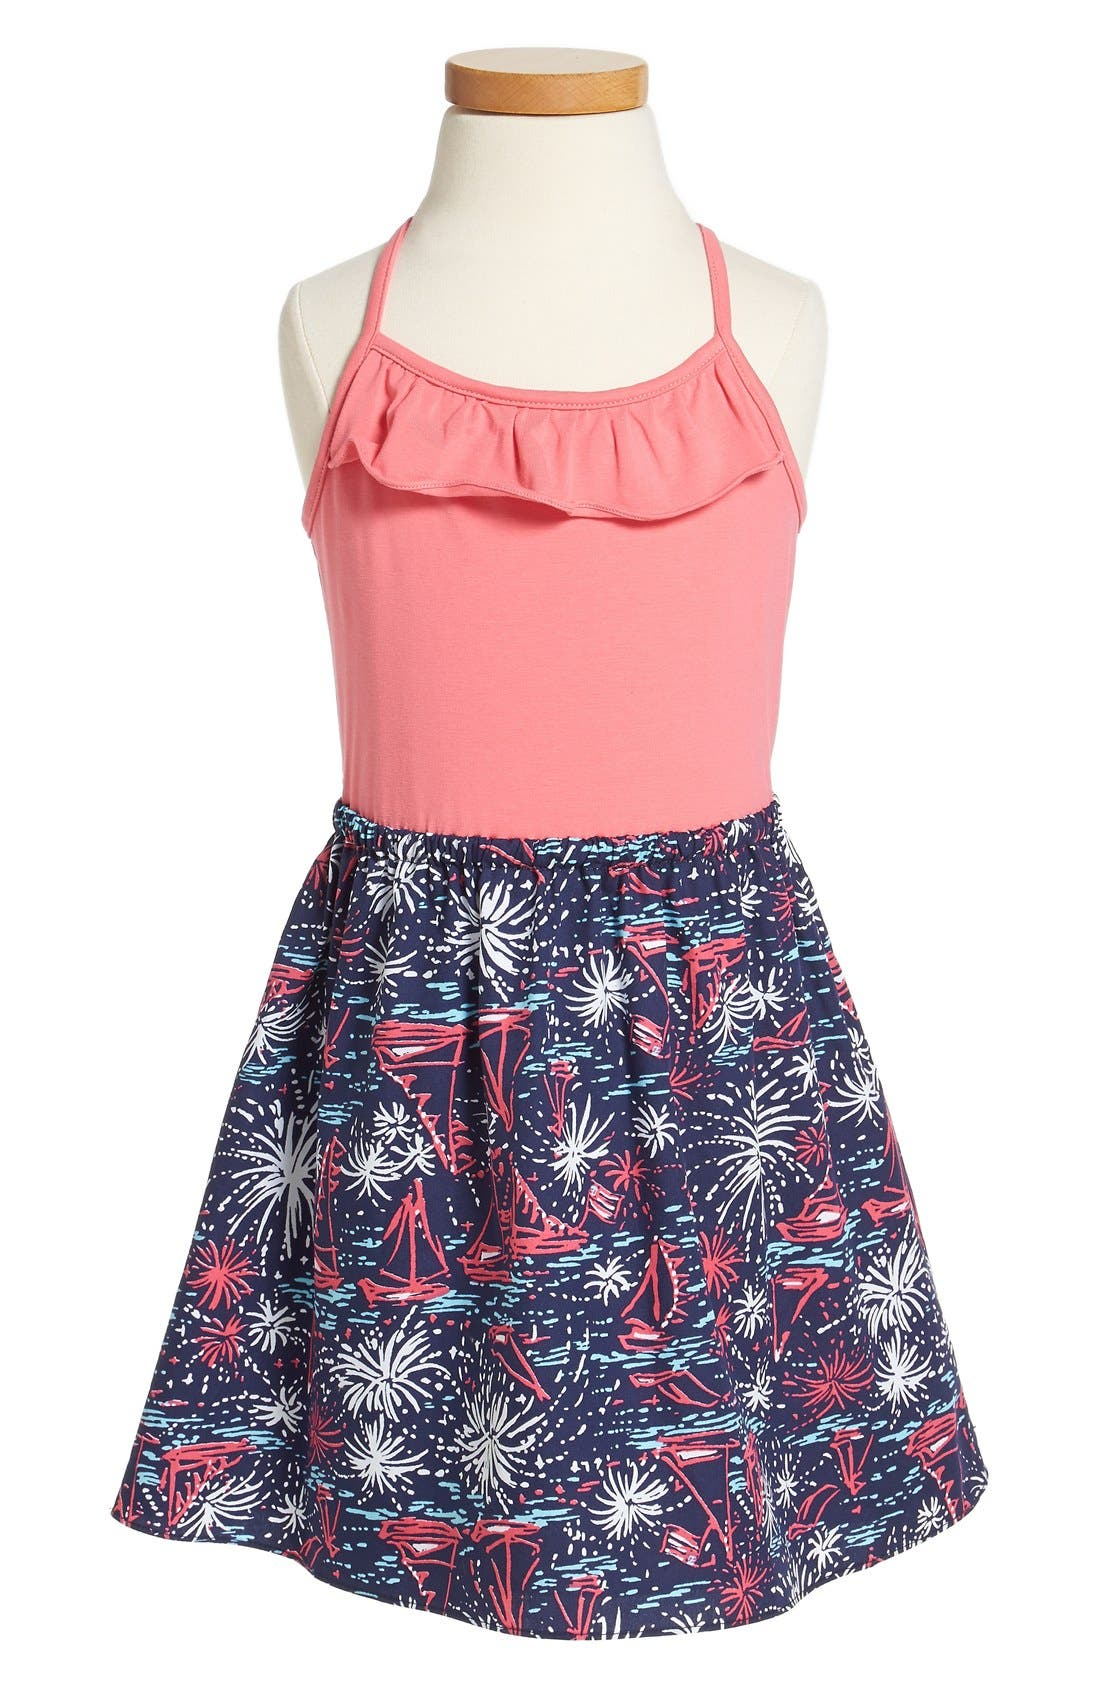 Alternate Image 1 Selected - Lilly Pulitzer® 'Dory' Glow-in-the-Dark Print Fit & Flare Sundress (Little Girls & Big Girls)